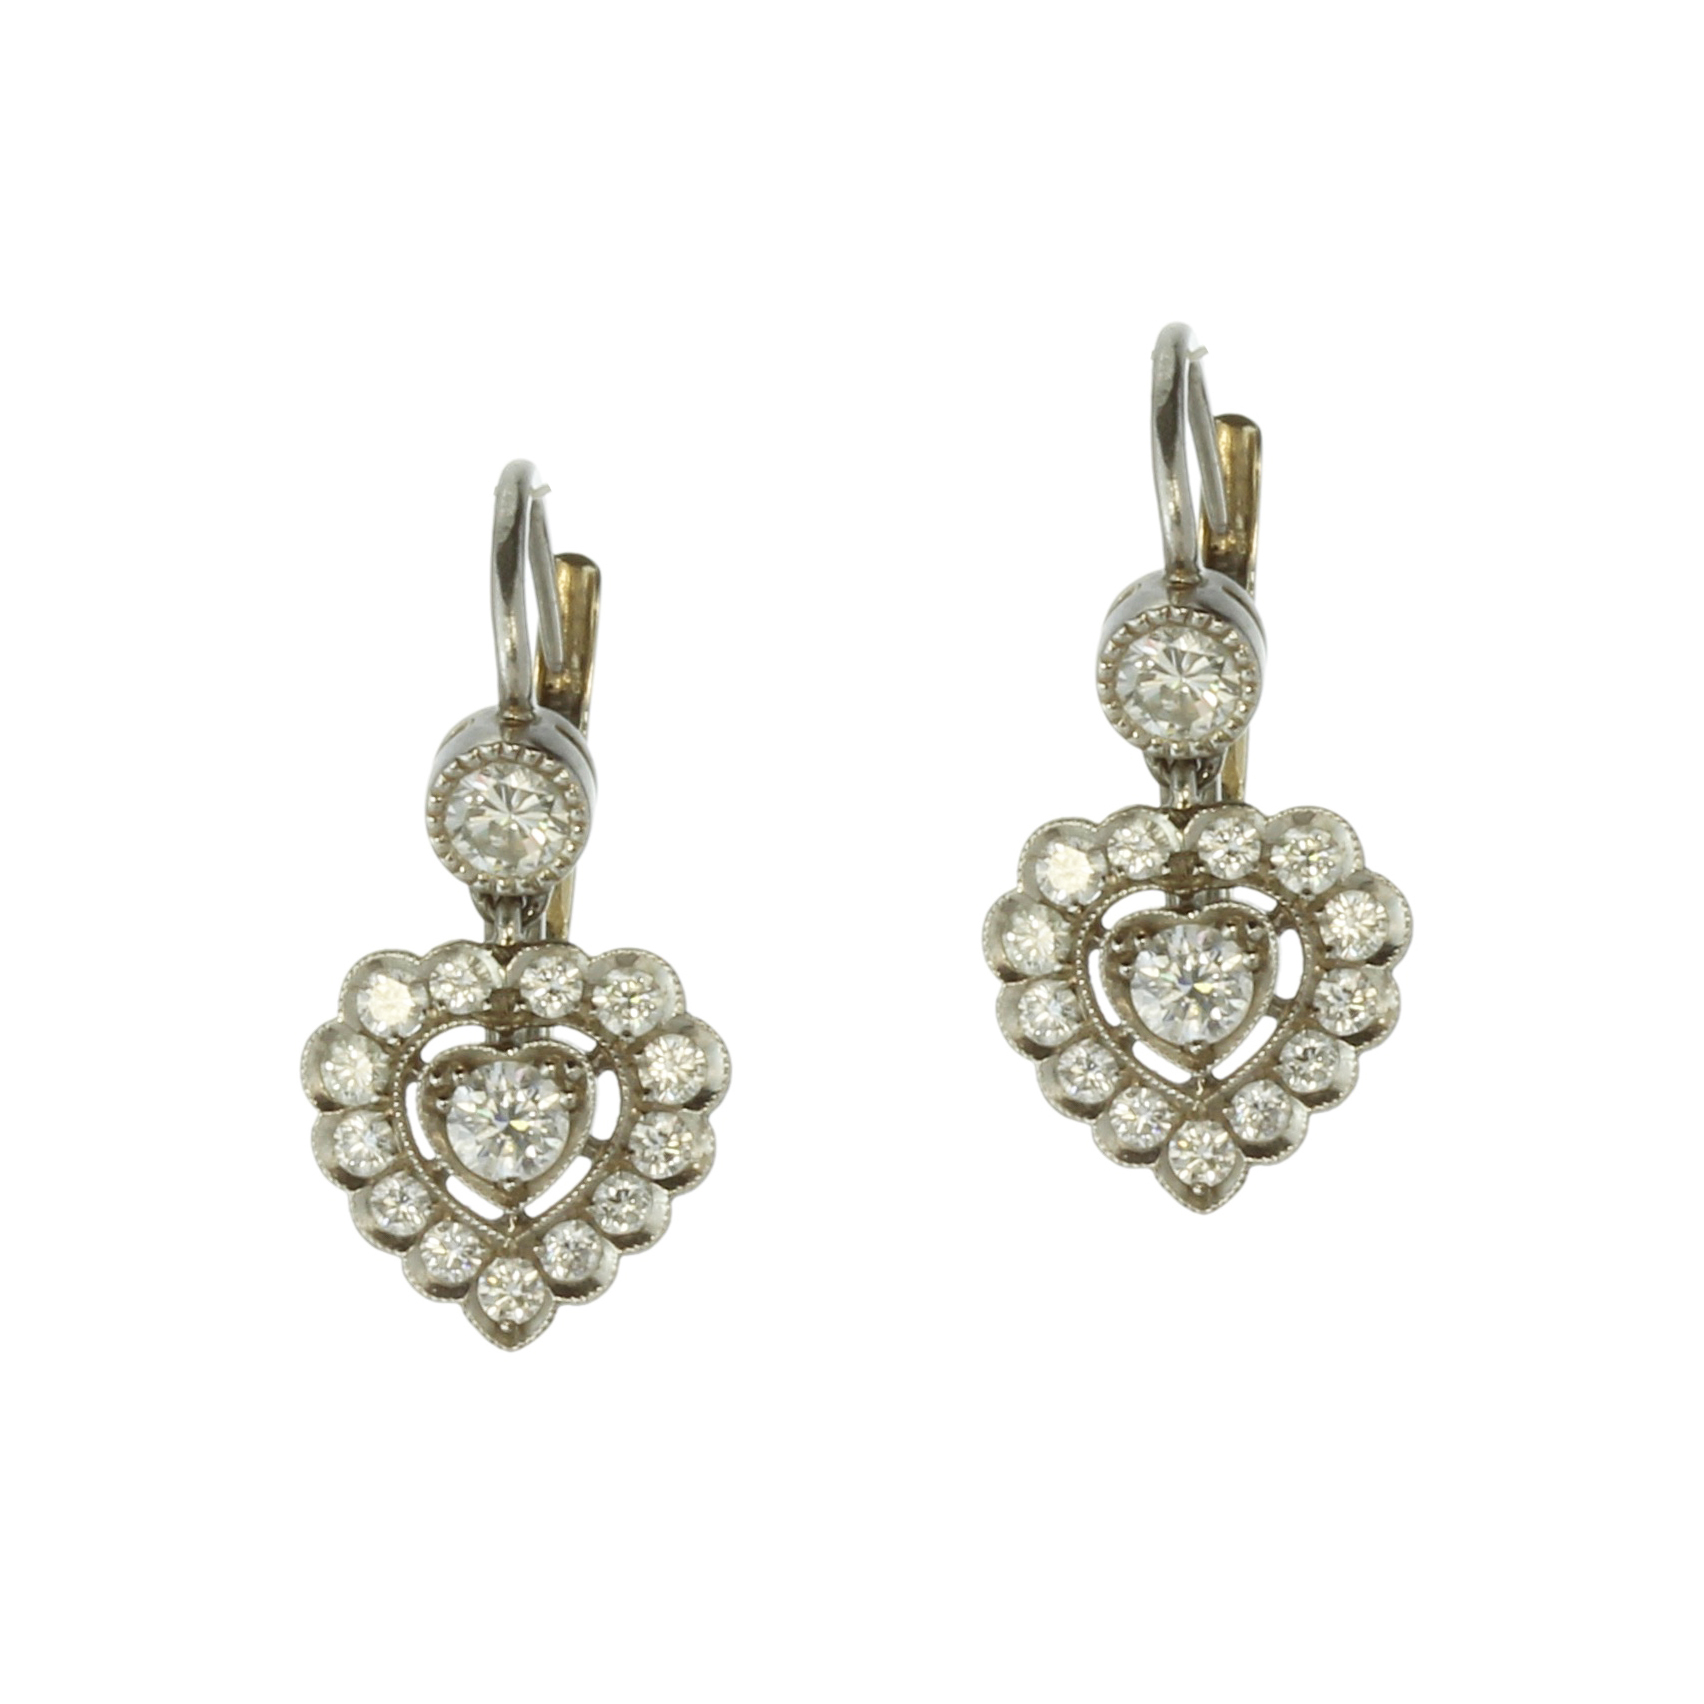 A pair of diamond cluster heart earrings in white gold or platinum, each set with a round cut